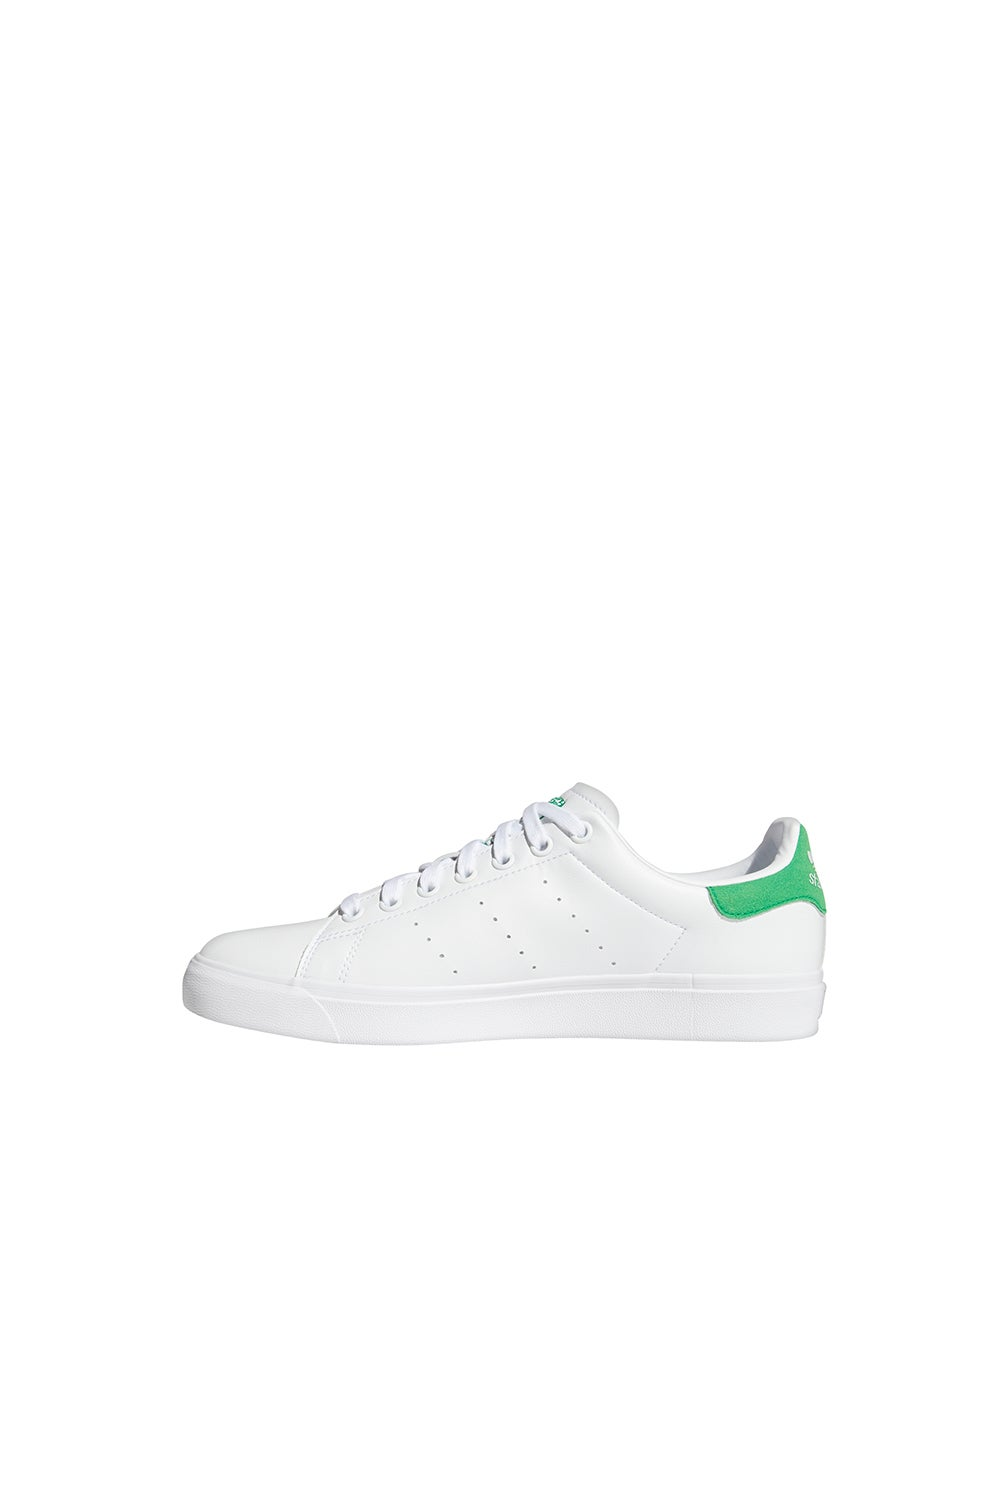 adidas Stan Smith Vulc White/Green